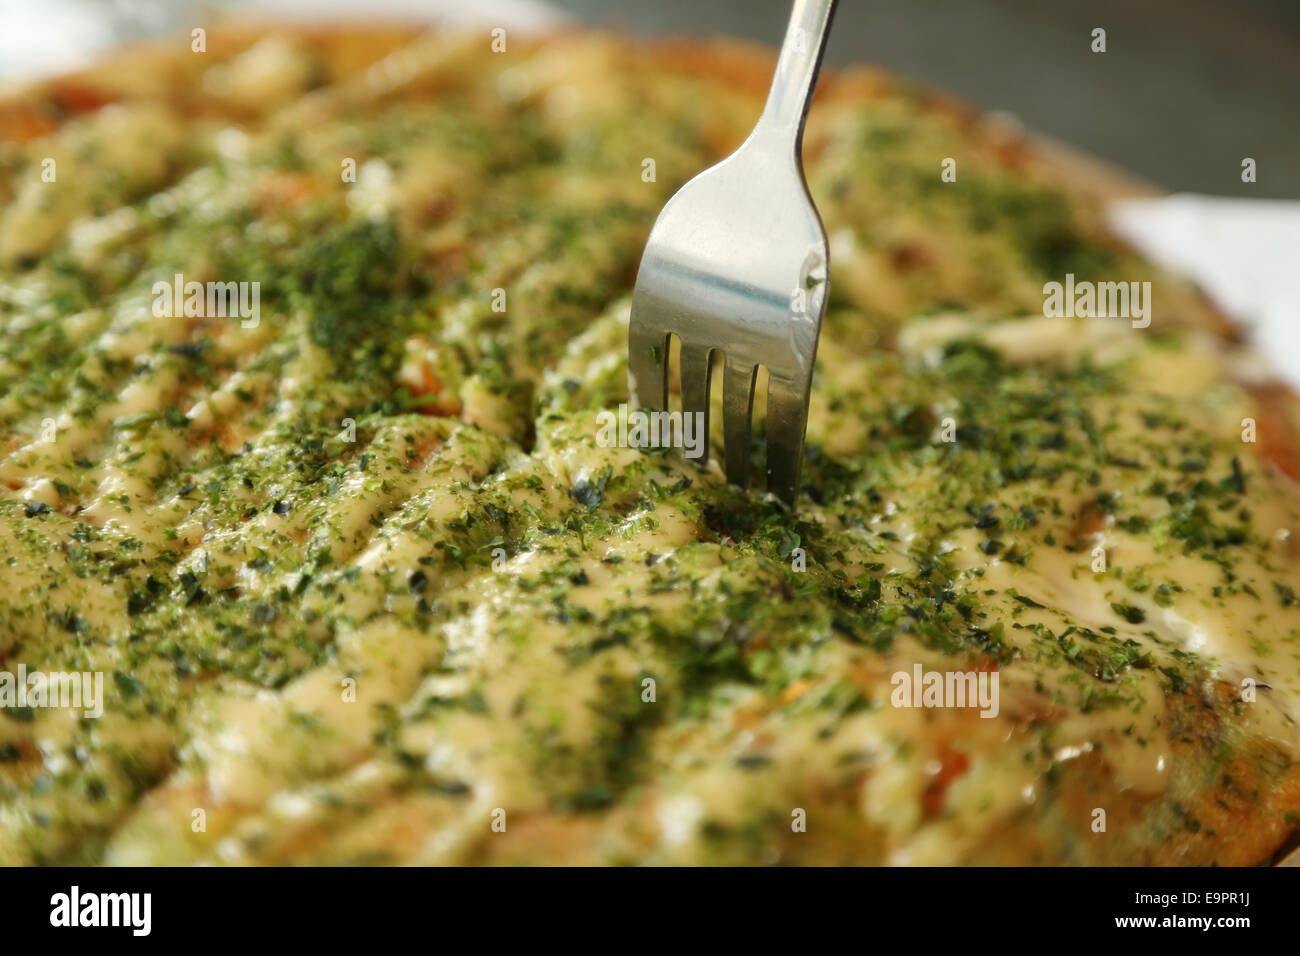 Pizza Japanese style in a cafe Stock Photo